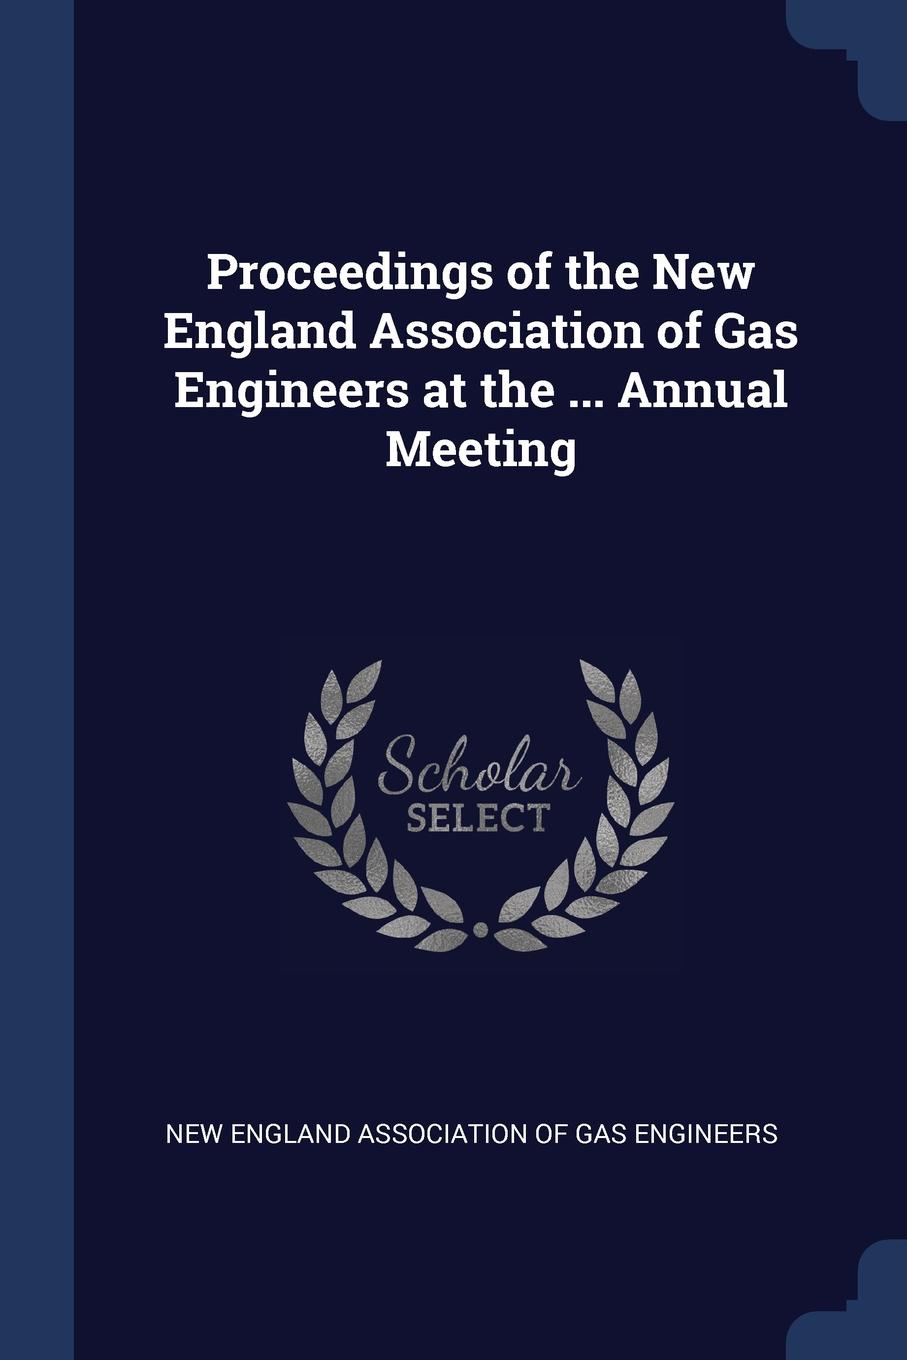 Proceedings of the New England Association Gas Engineers at ... Annual Meeting